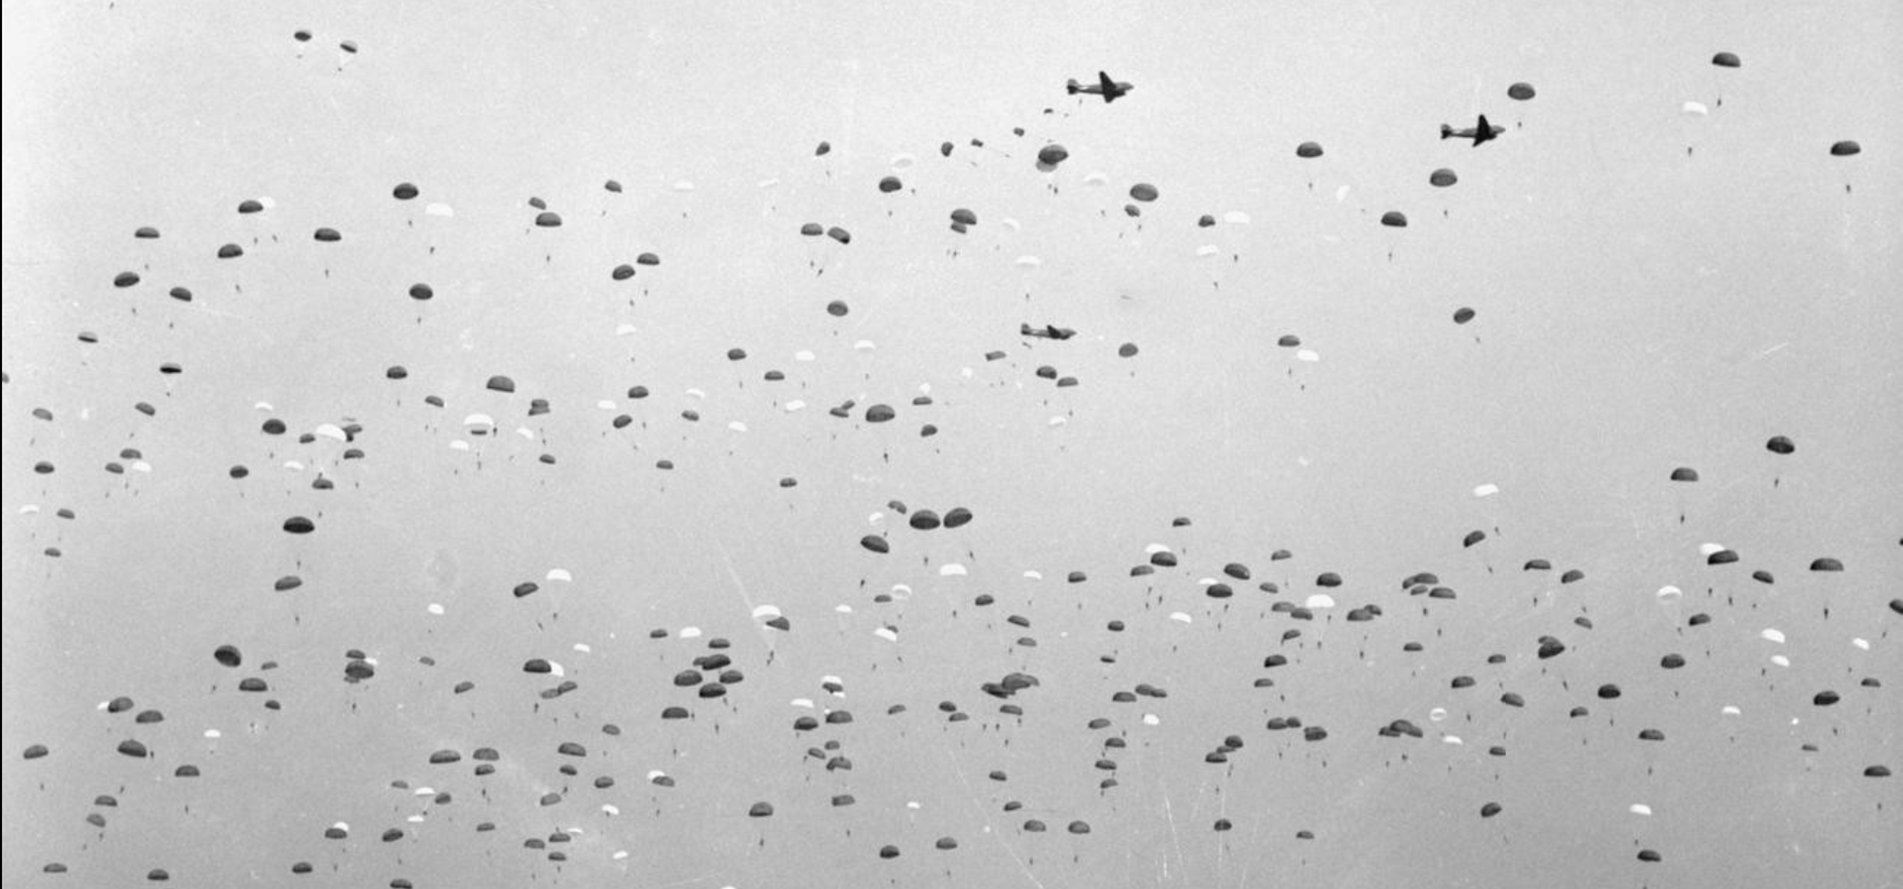 © H 36950 The US 10st Airborne Division stages a mass paratroop drop at Lambourn in Berkshire during a visit by Prime Minister Winston Churchill, March 1944..png